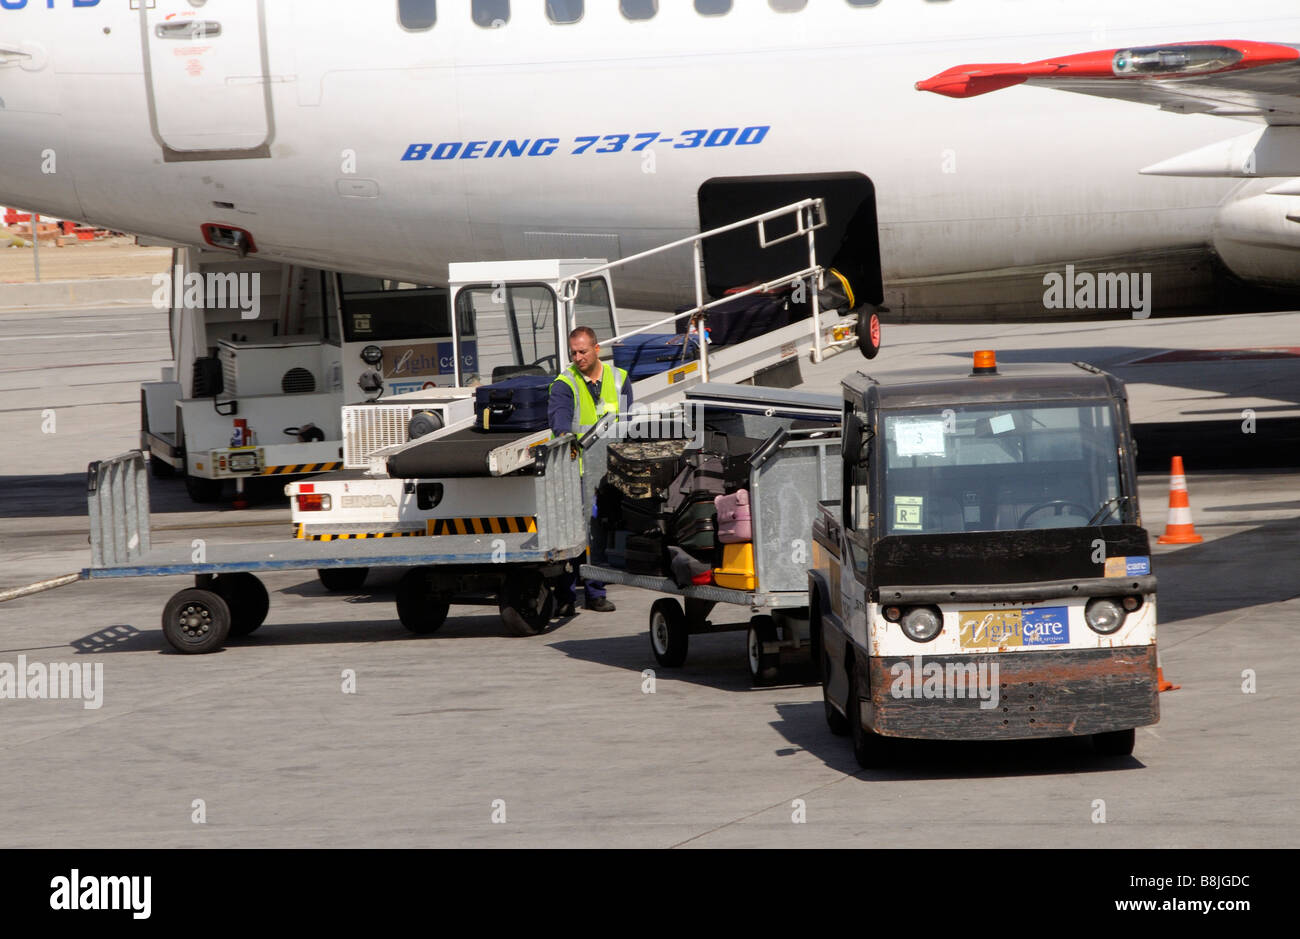 Baggage handler unloading luggage from a Boeing 737 jet aircraft at Malaga International Airport southern Spain - Stock Image